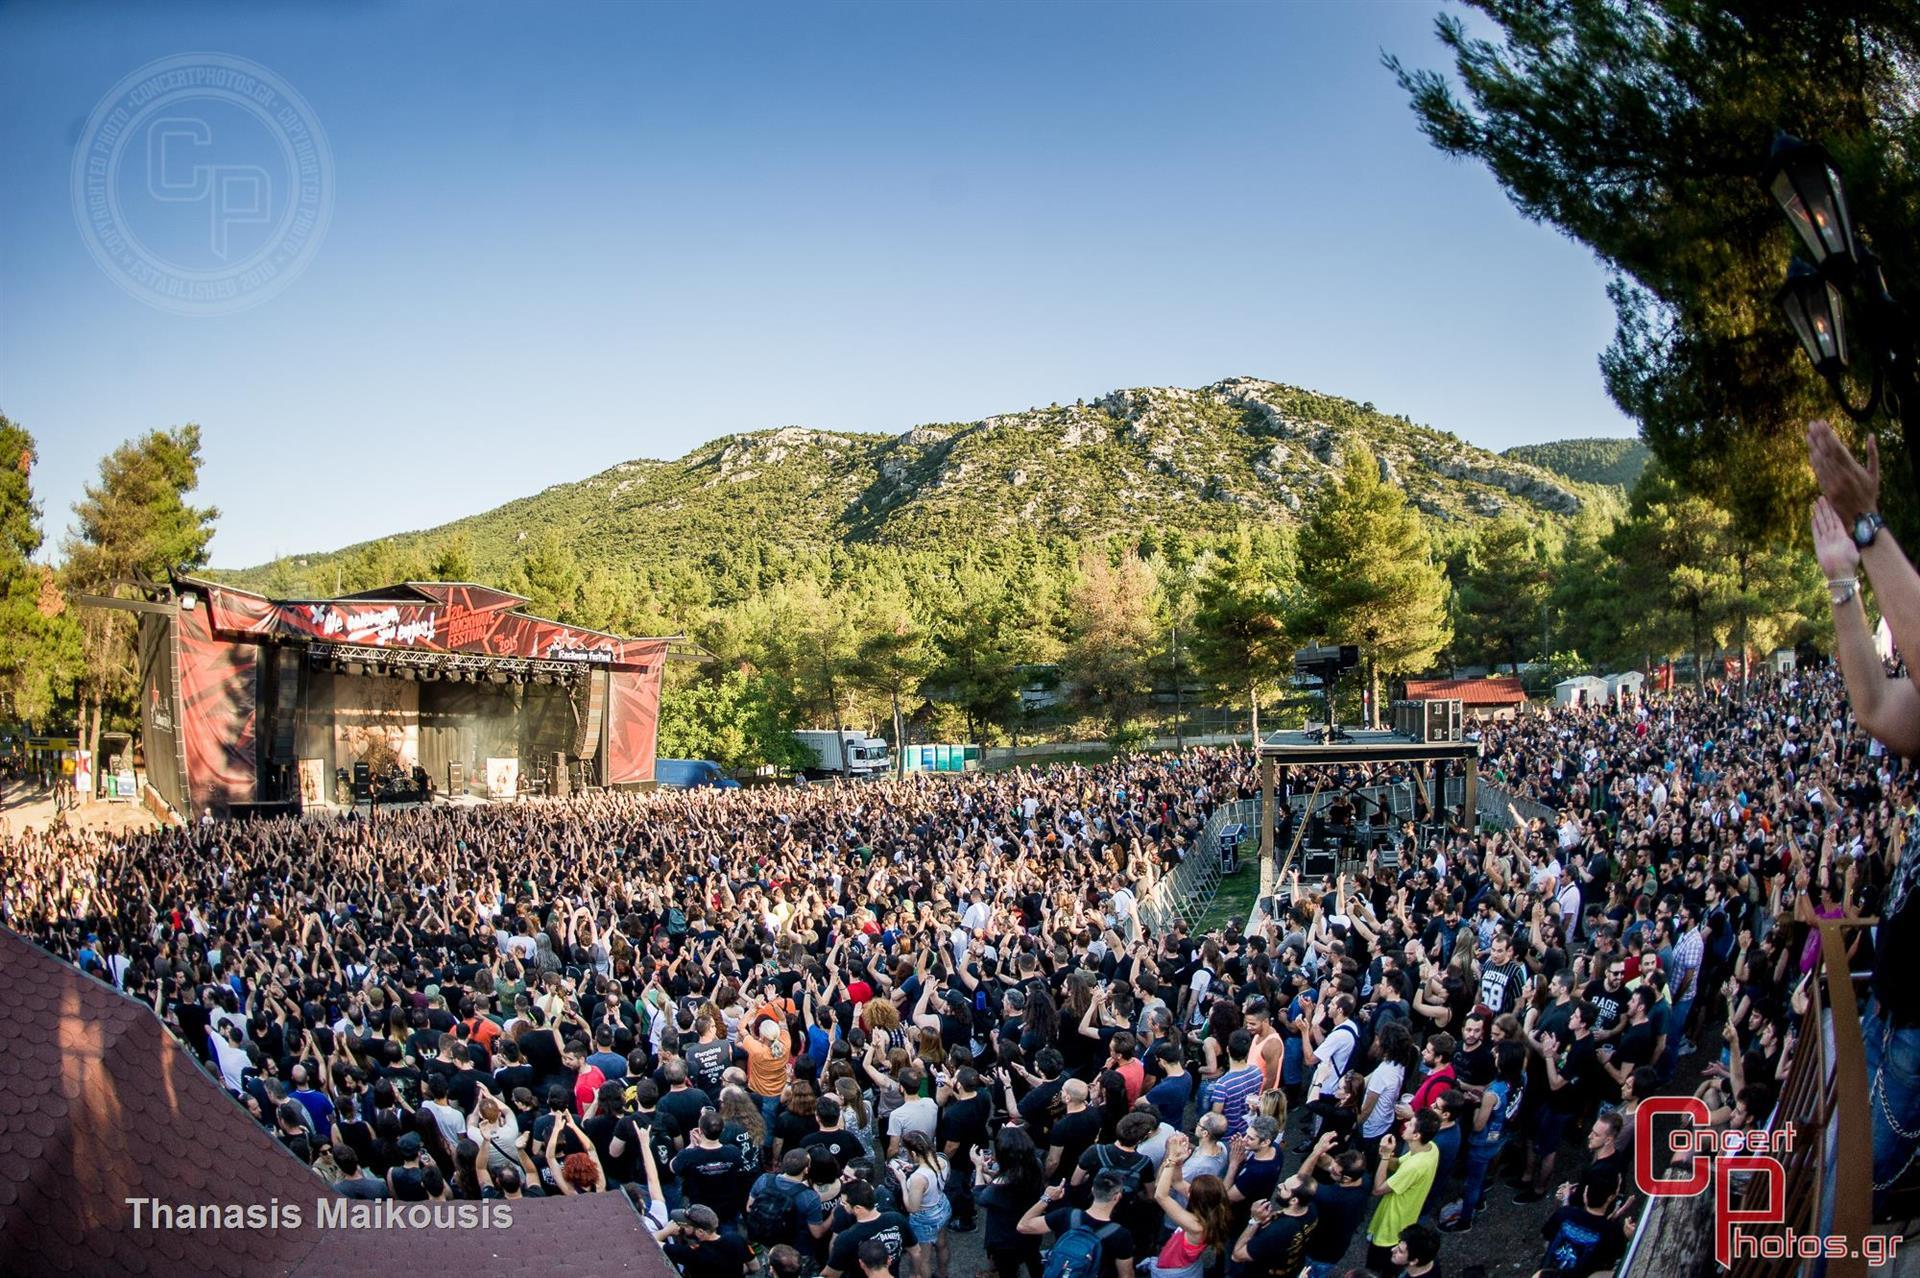 Rockwave 2015 - Day 3-Rockwave 2015 - Day 3 photographer: Thanasis Maikousis - ConcertPhotos - 20150704_1824_45